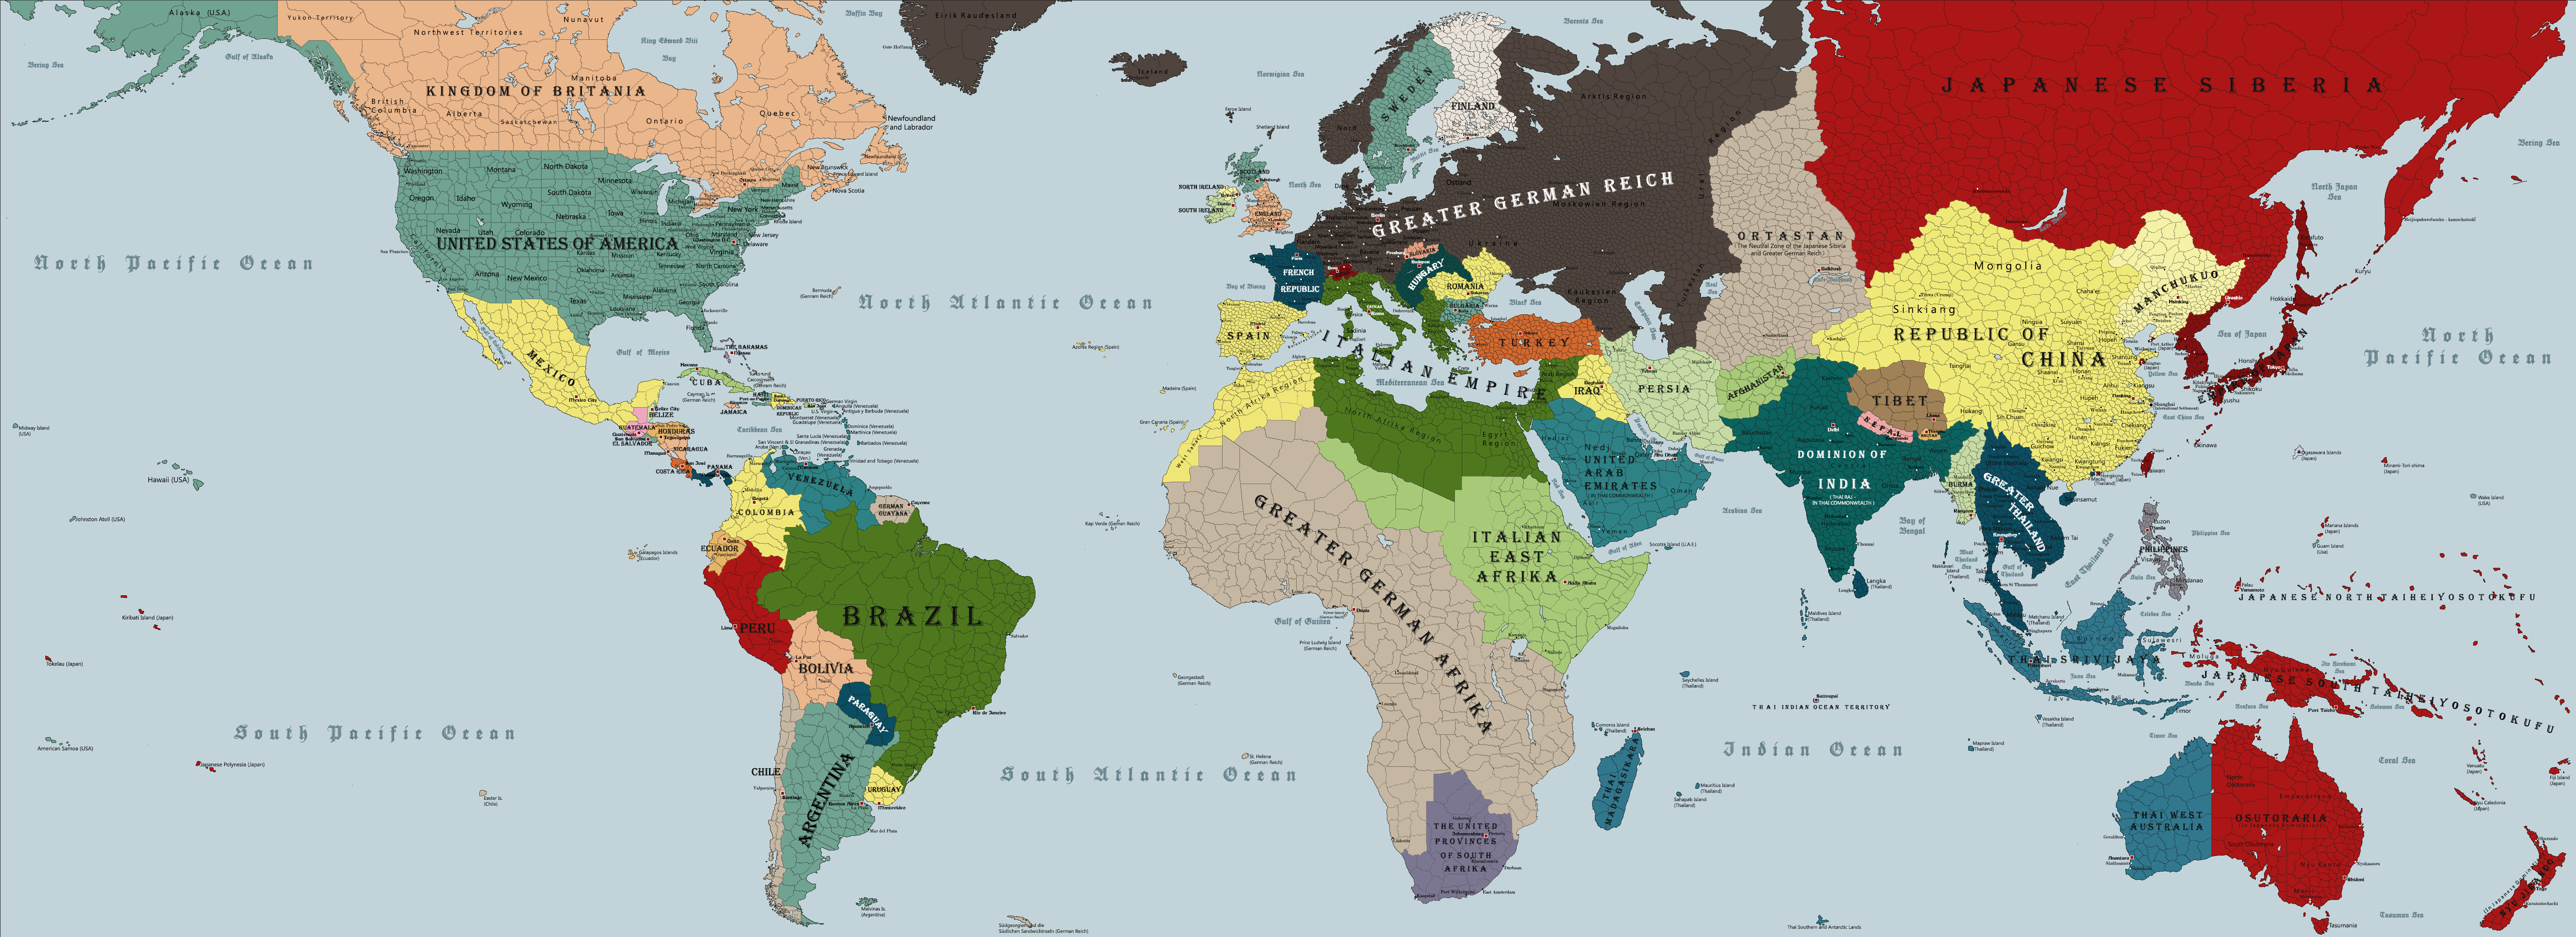 New World Order World Map After Axis Win The War By